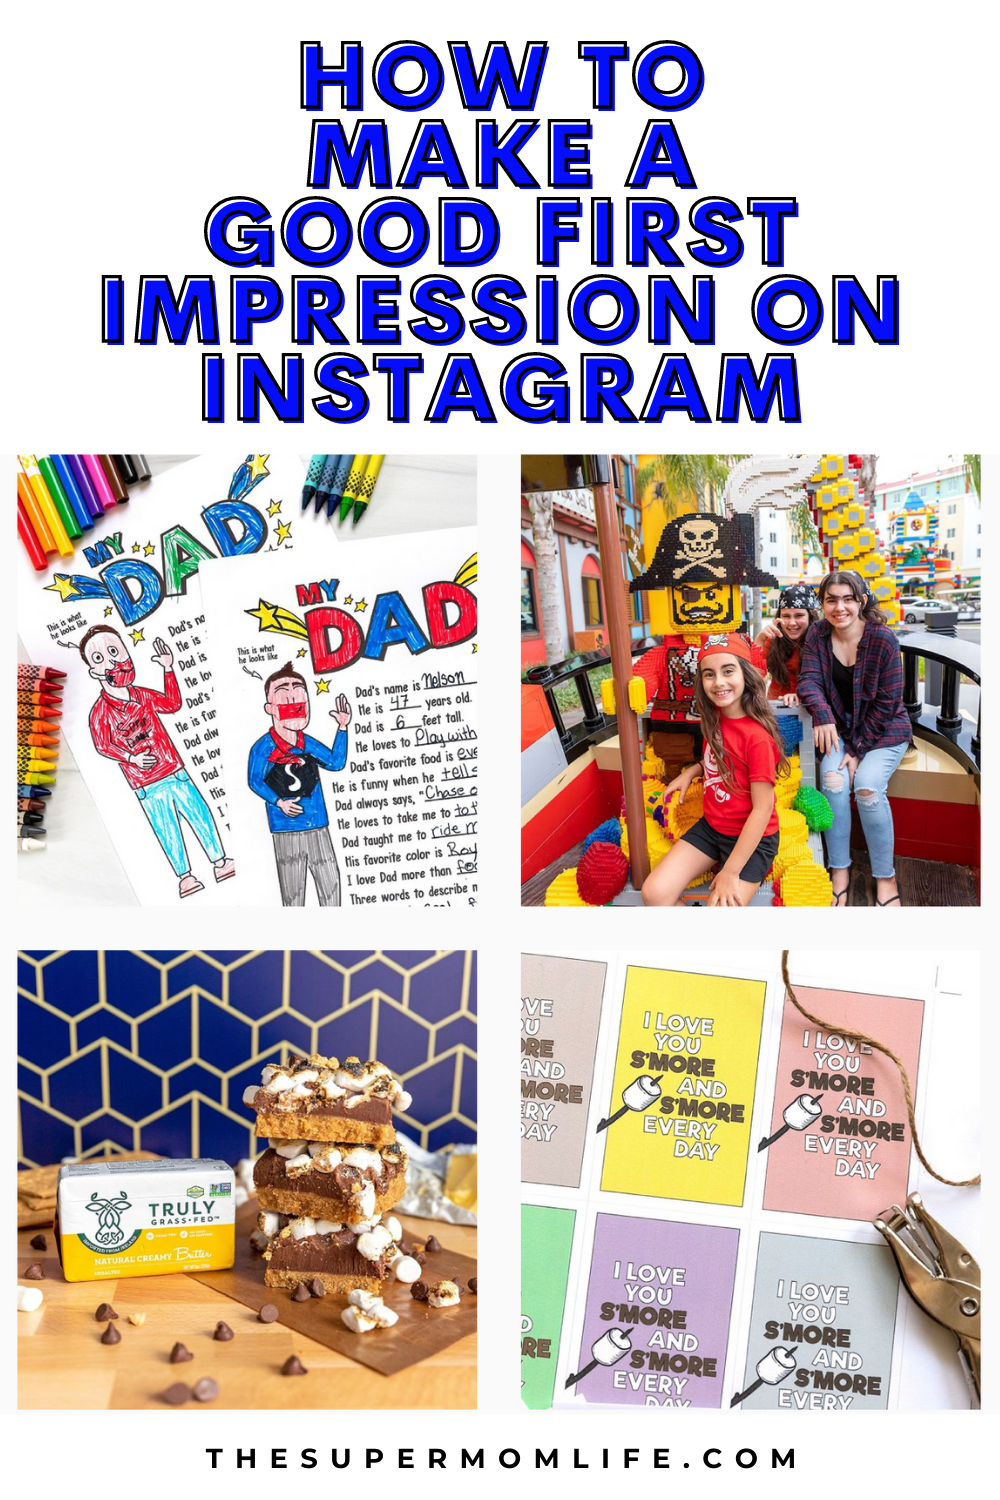 Are you making the most out of your Instagram squares? Here are some tips from some top brand reps in the industry.